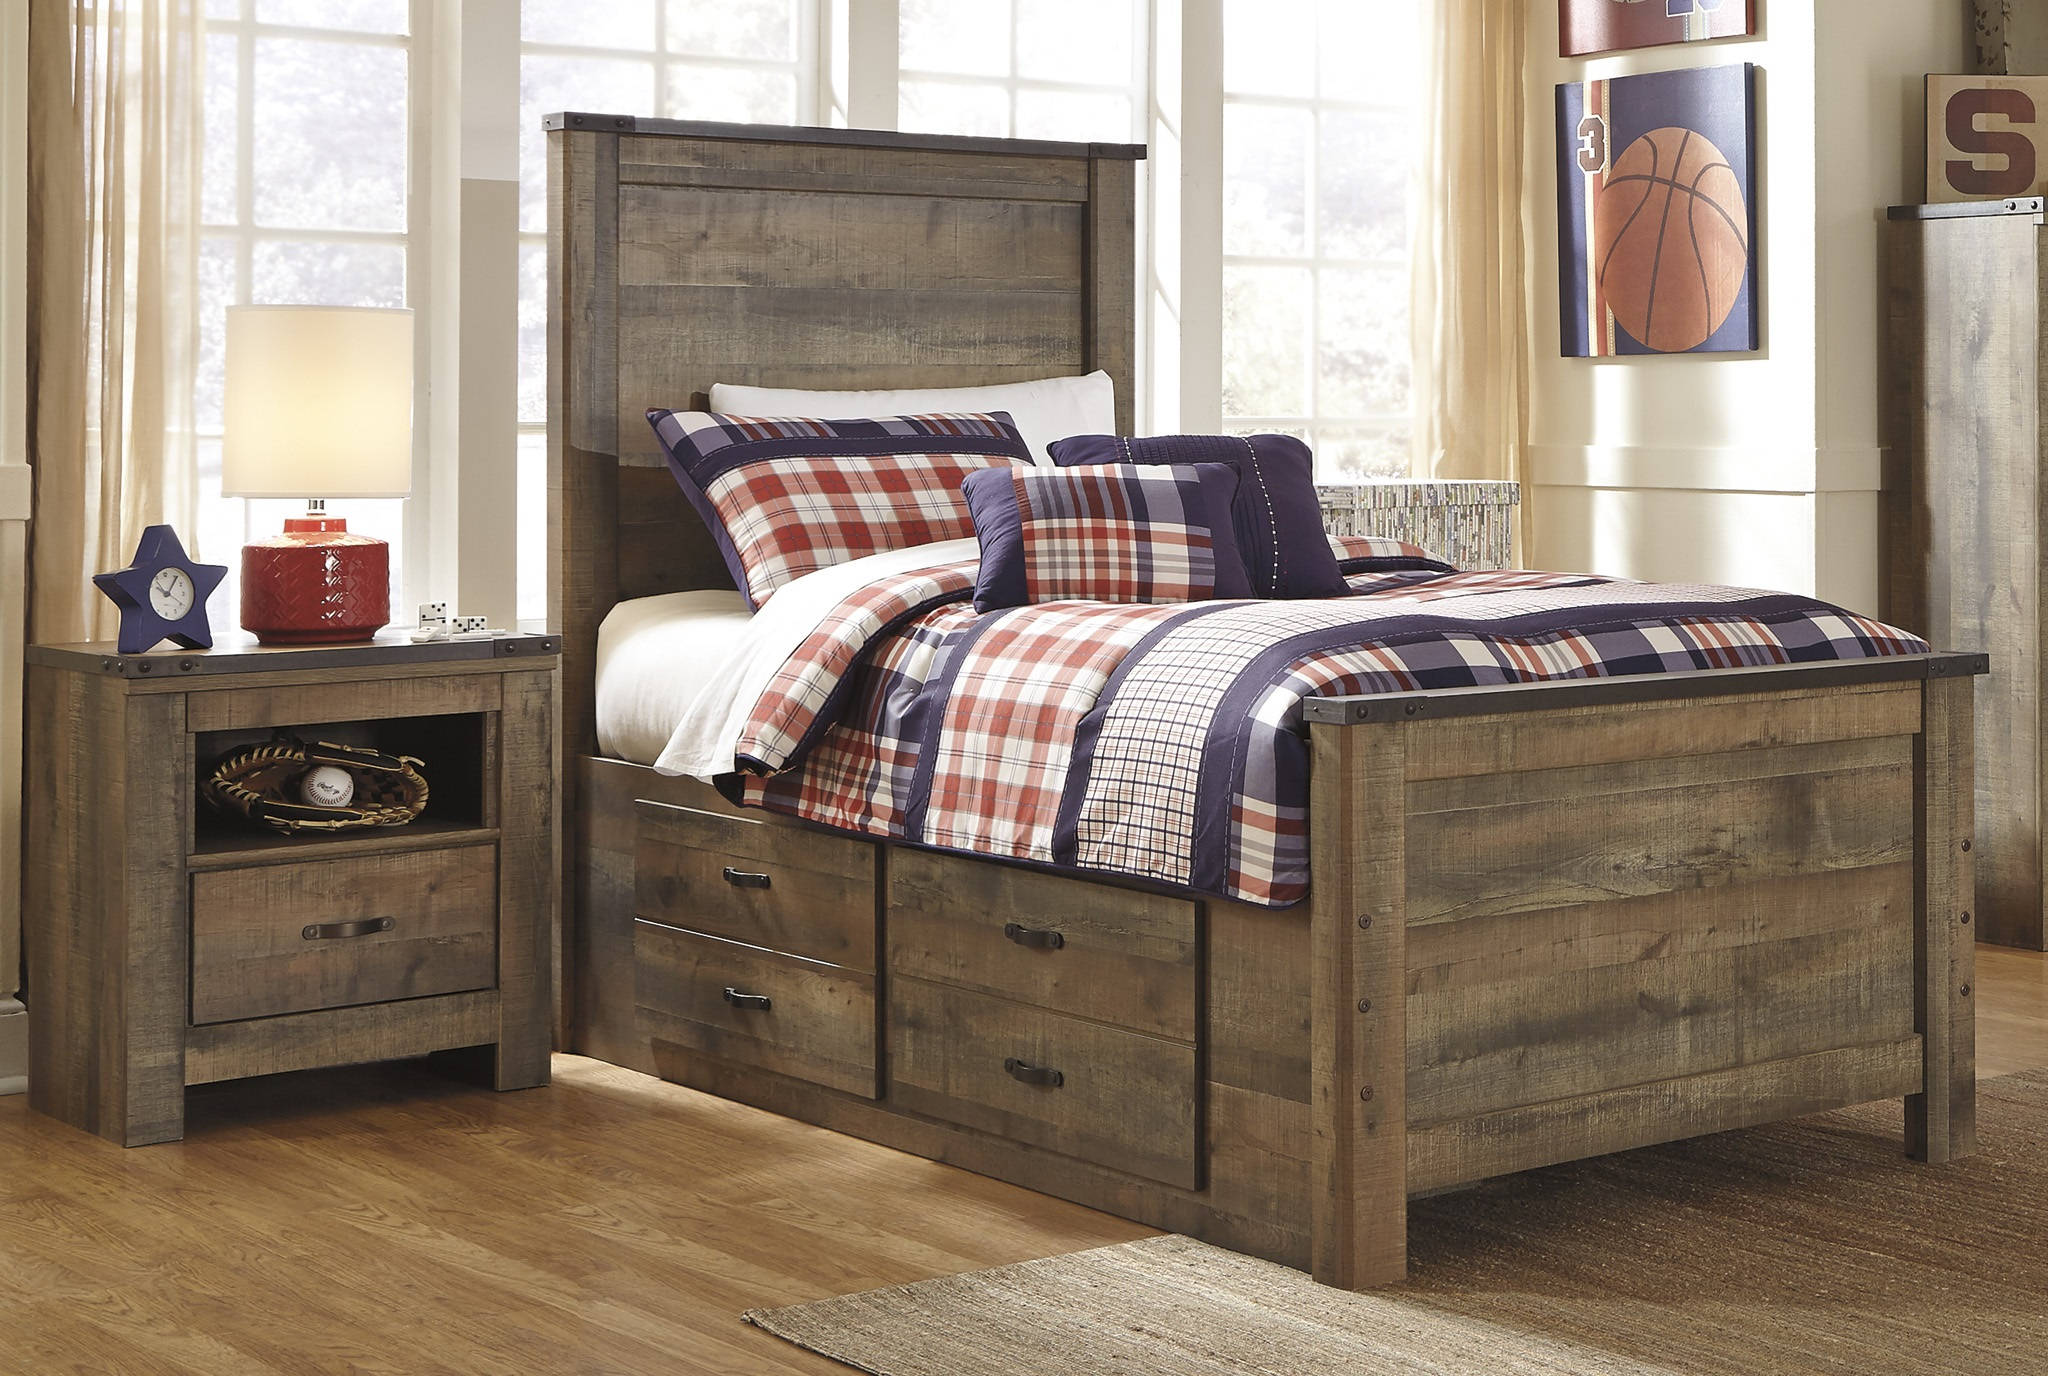 Ashley Furniture Trinell 2pc Bedroom Set With Twin Drawer Bed The Classy Home